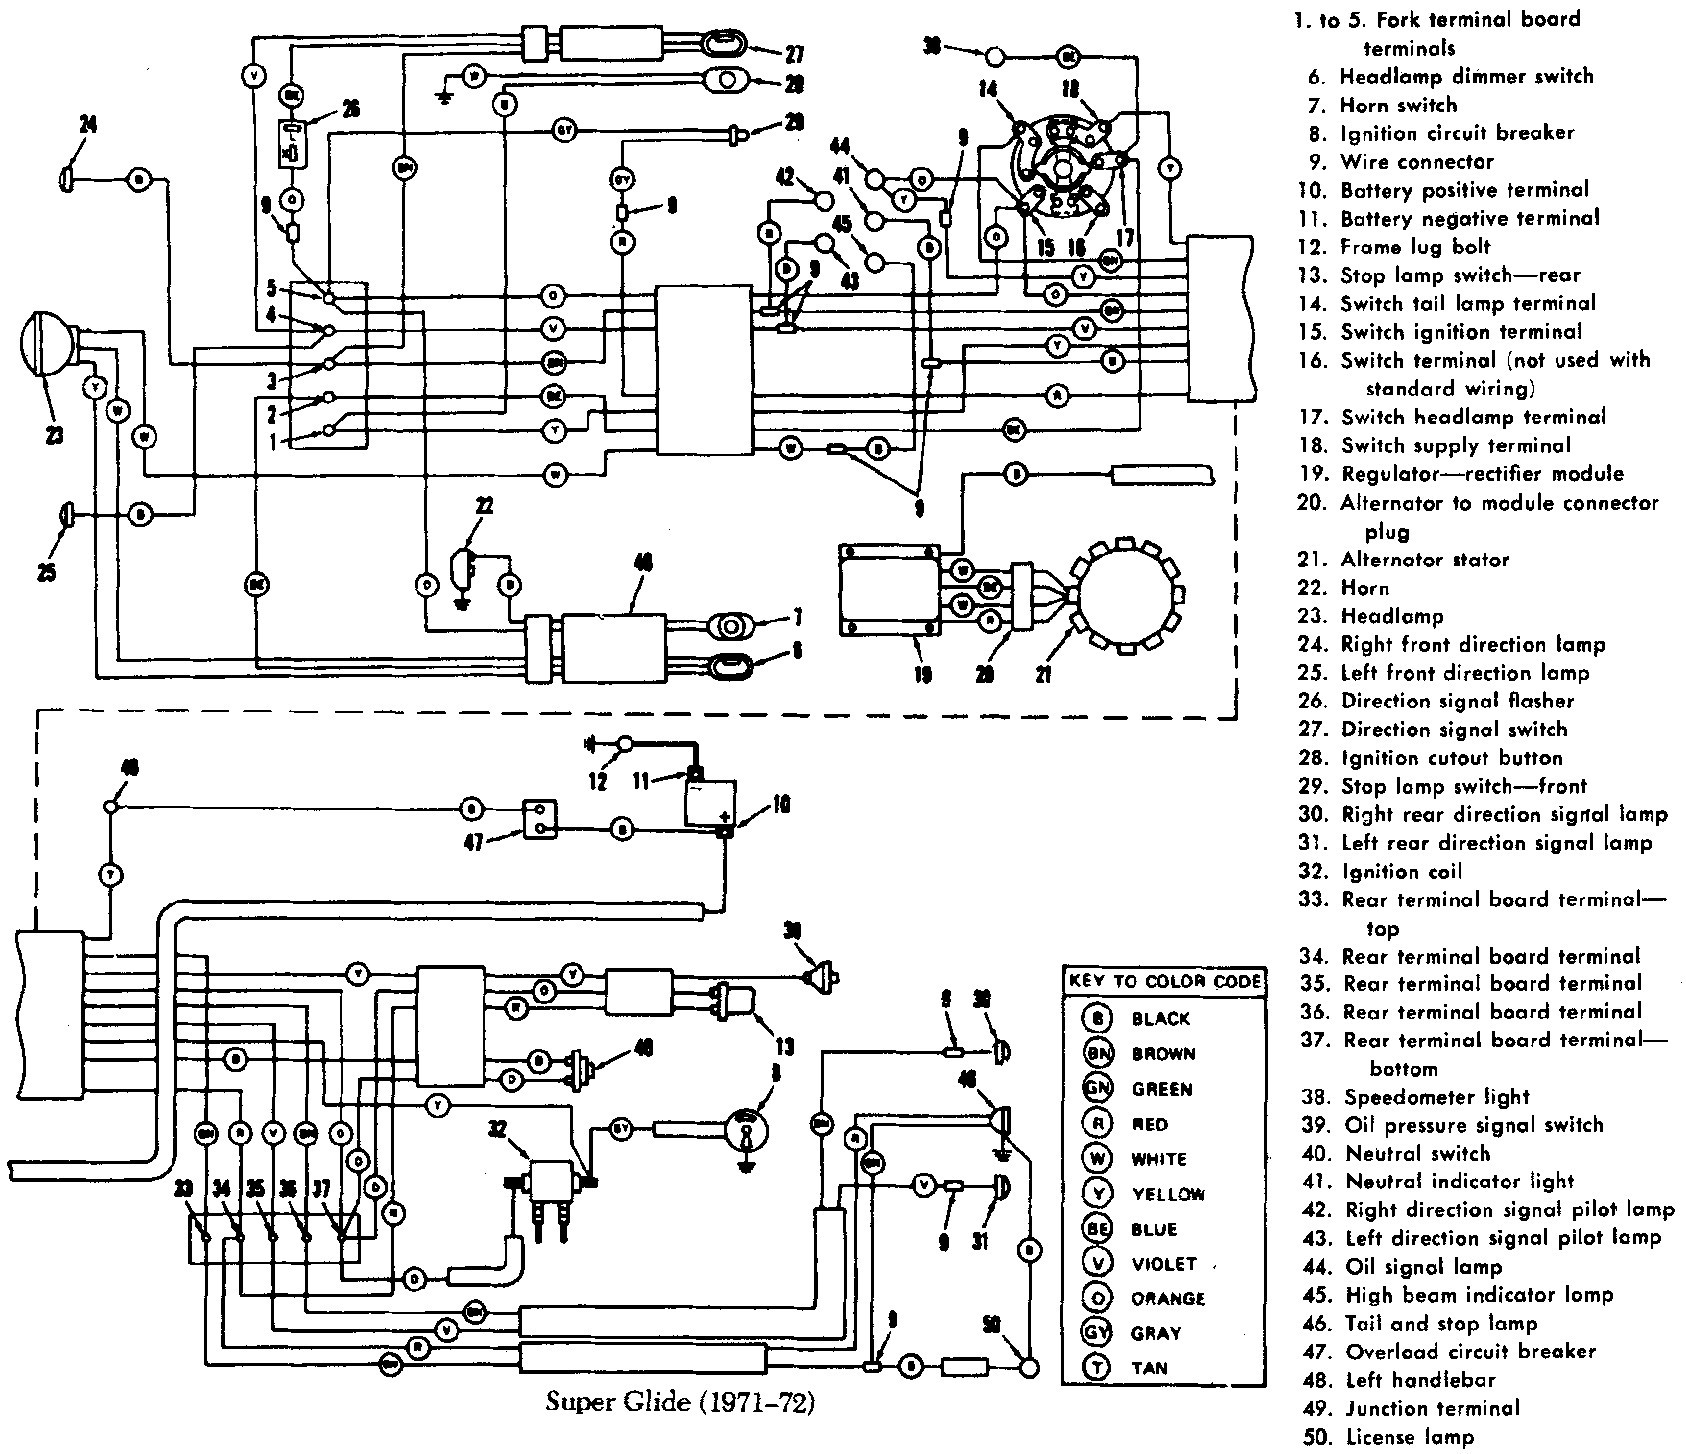 Harley Golf Cart Wiring Diagram For 79 | #1 Wiring Diagram Source on